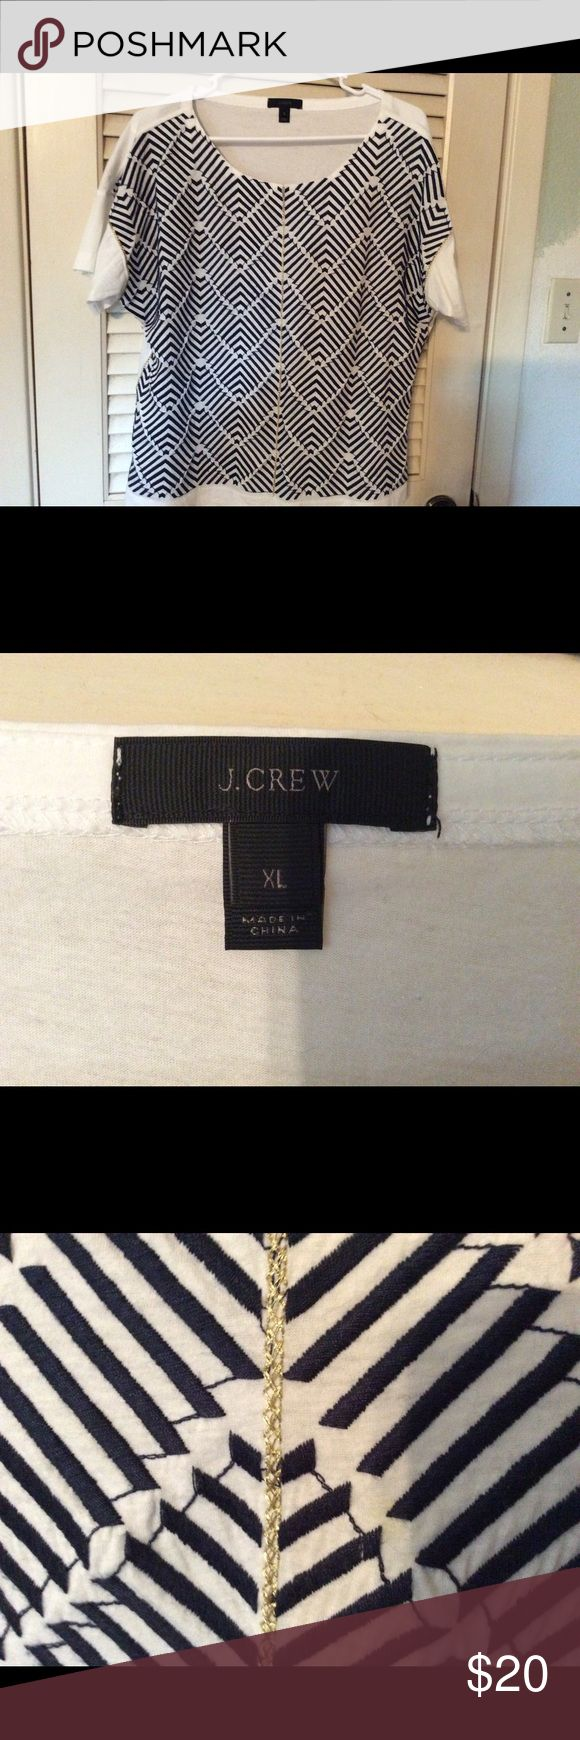 🌸 Embroidered J Crew Top 🌸 Blue and white embroidered J Crew top with subtle gold braided detail. Great condition! J. Crew Tops Tees - Short Sleeve